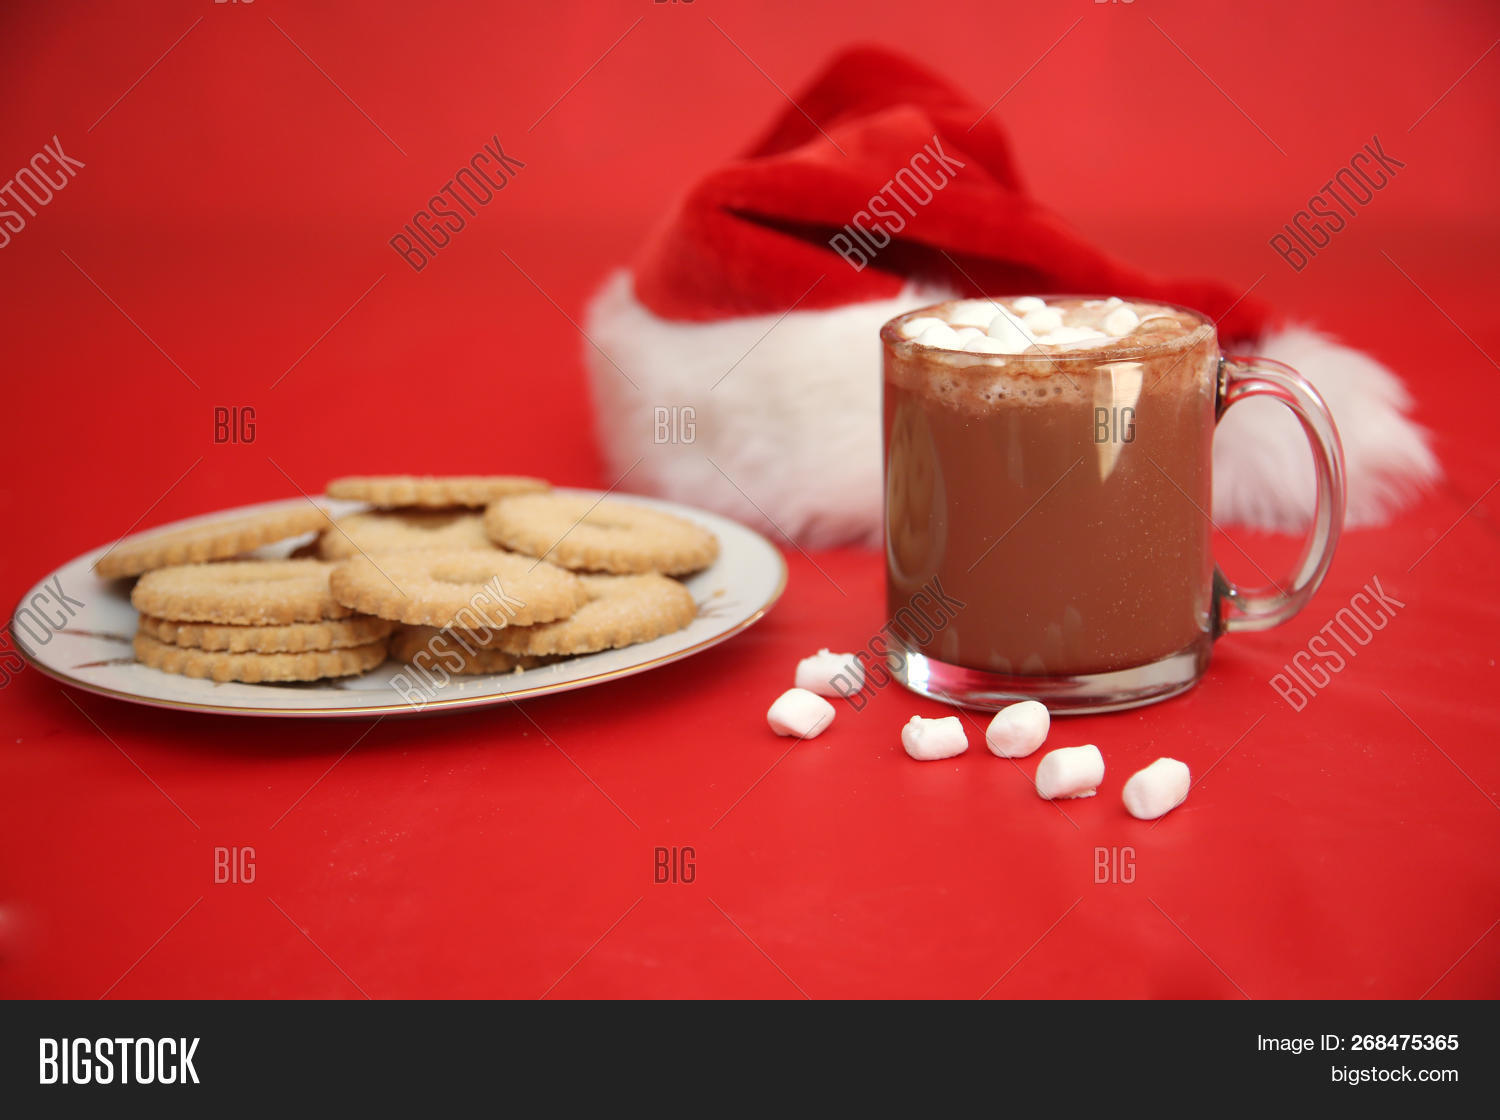 Hot Chocolate Image Photo Free Trial Bigstock